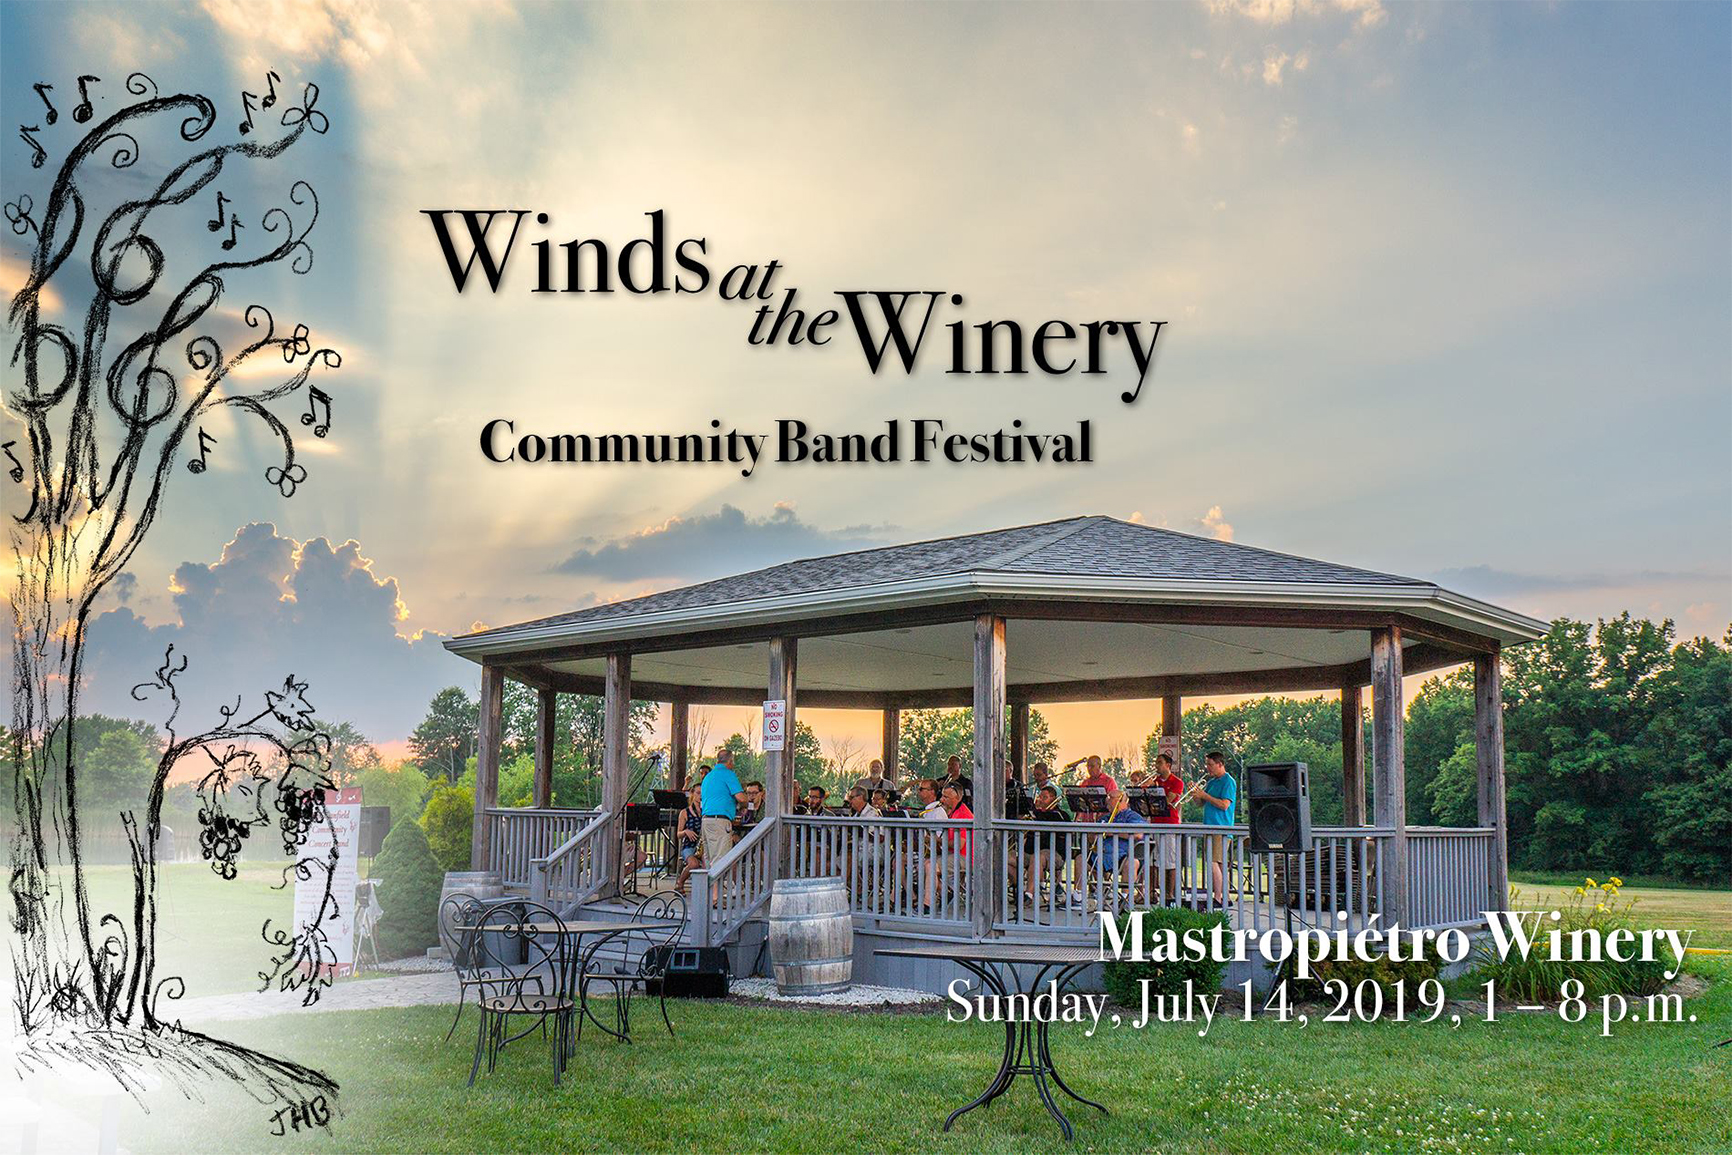 Winds at the Winery